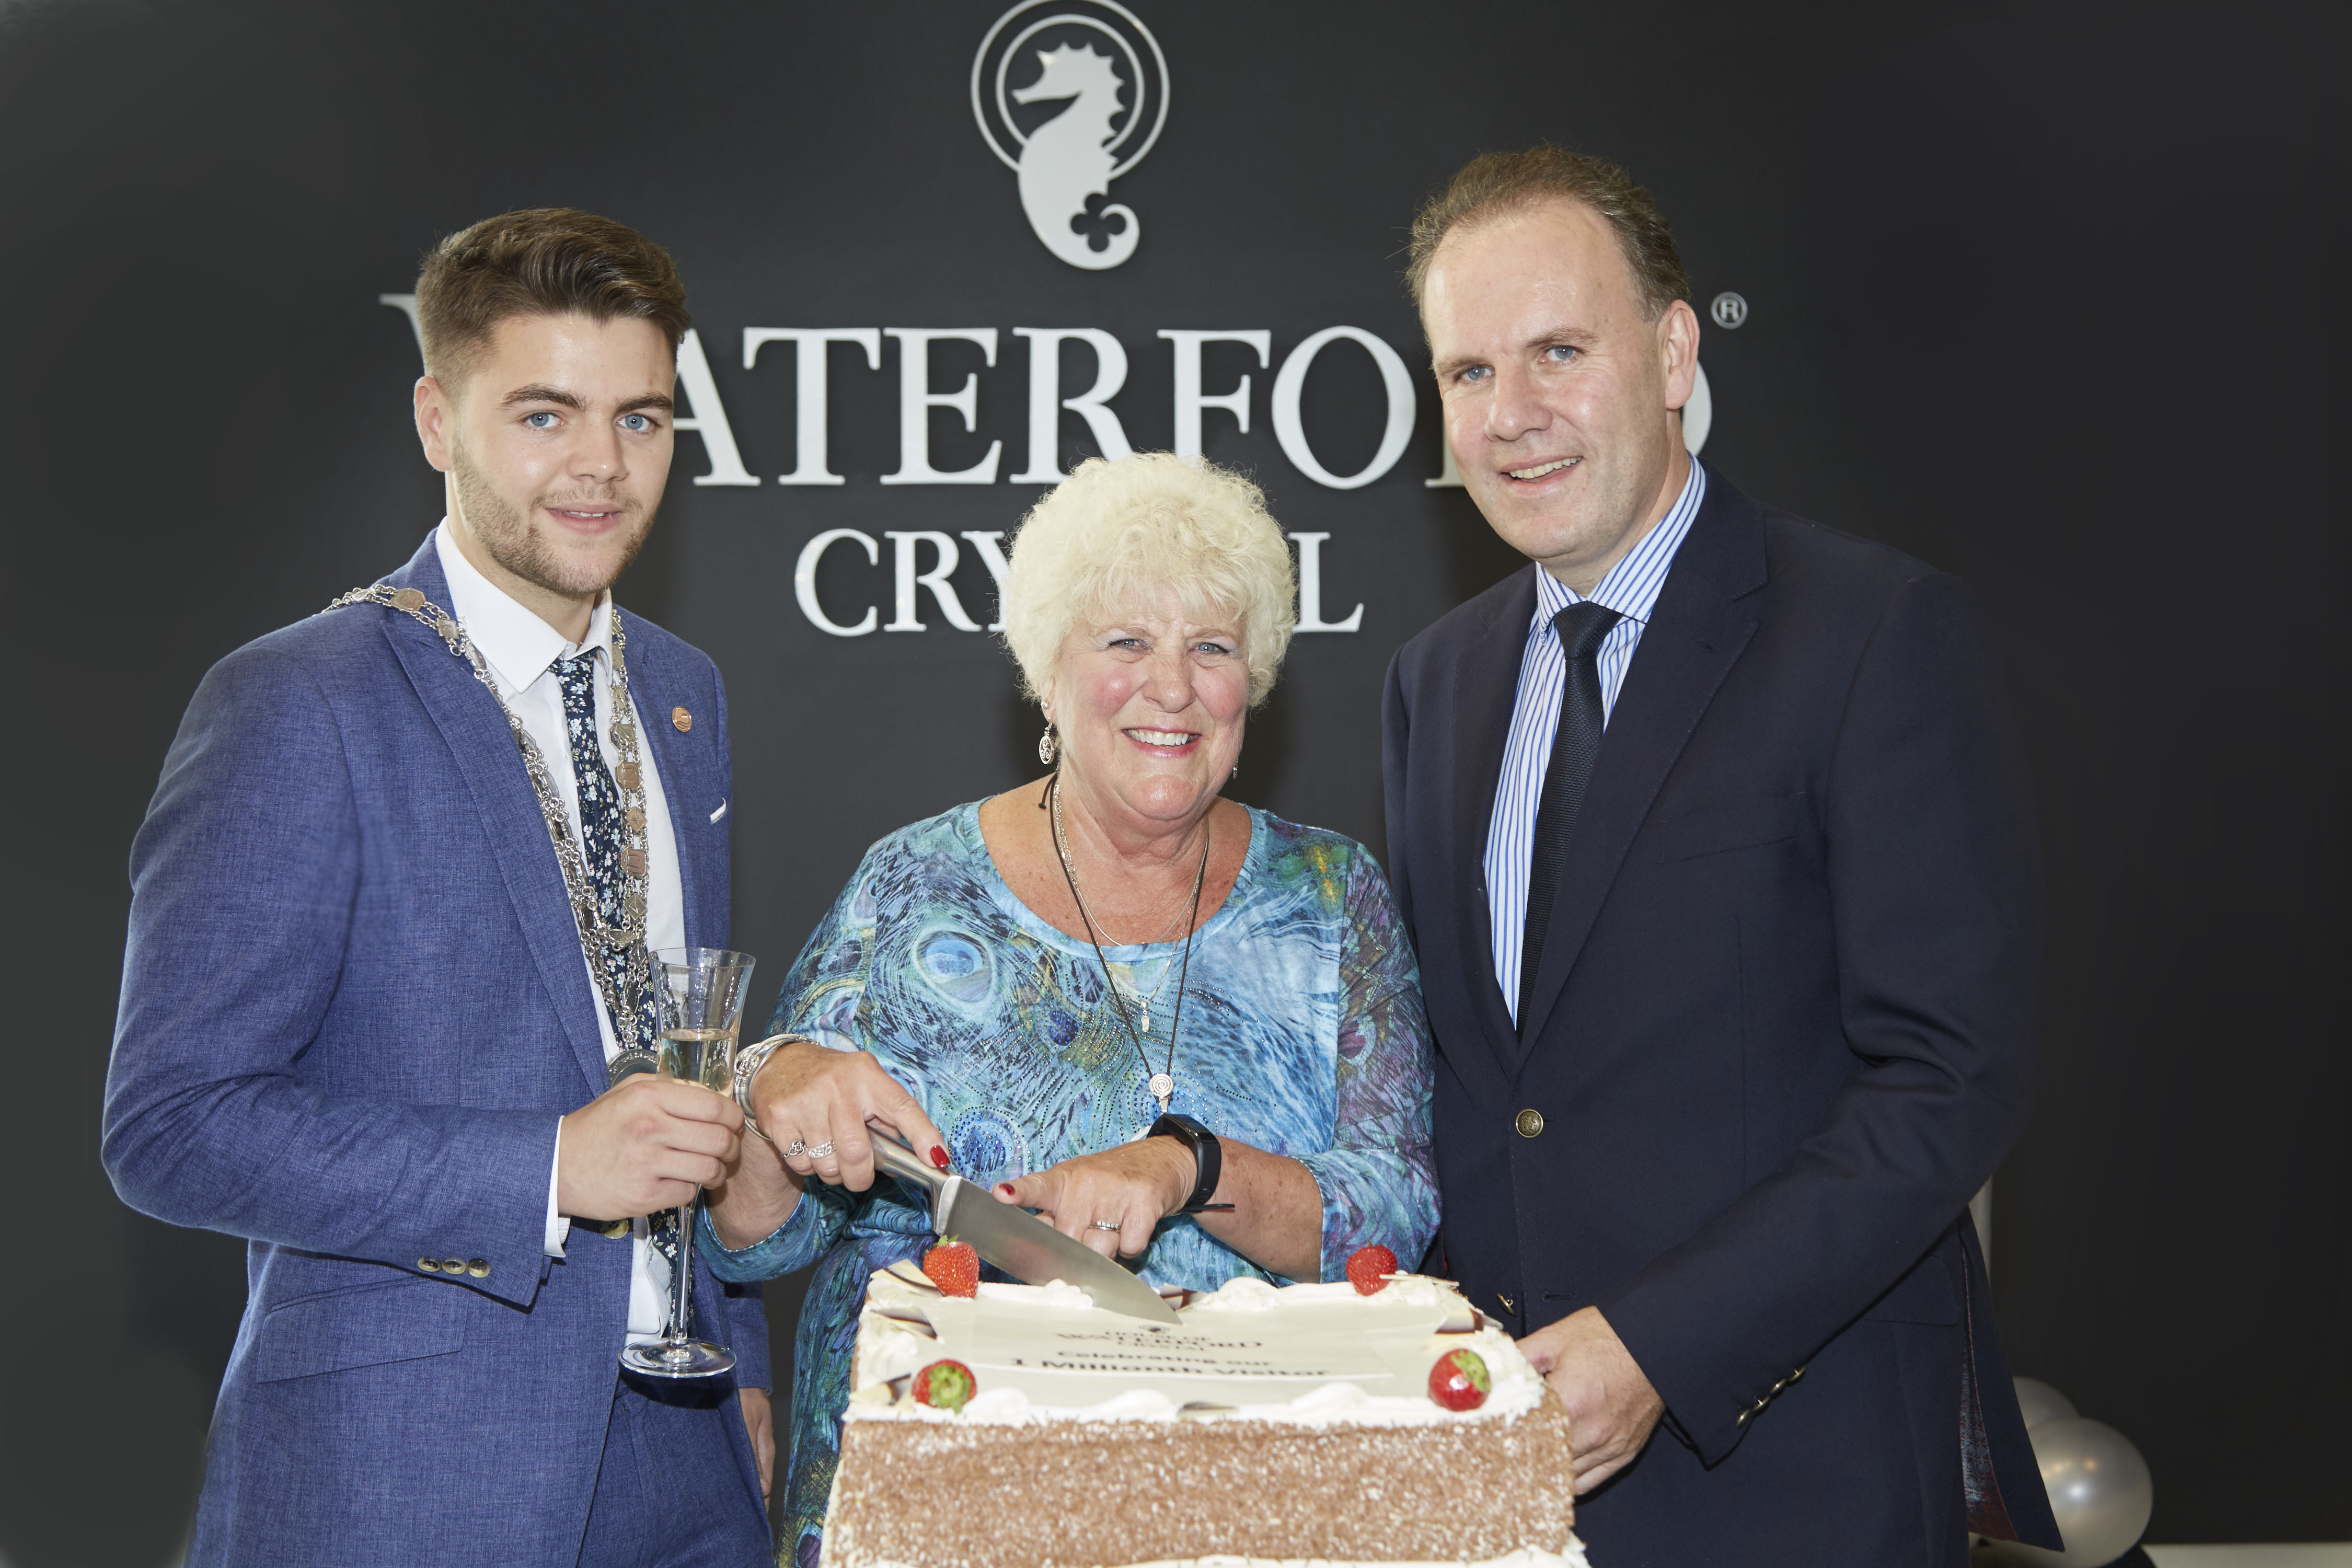 House of Waterford Crystal Celebrating their 1 Millionth Visitor